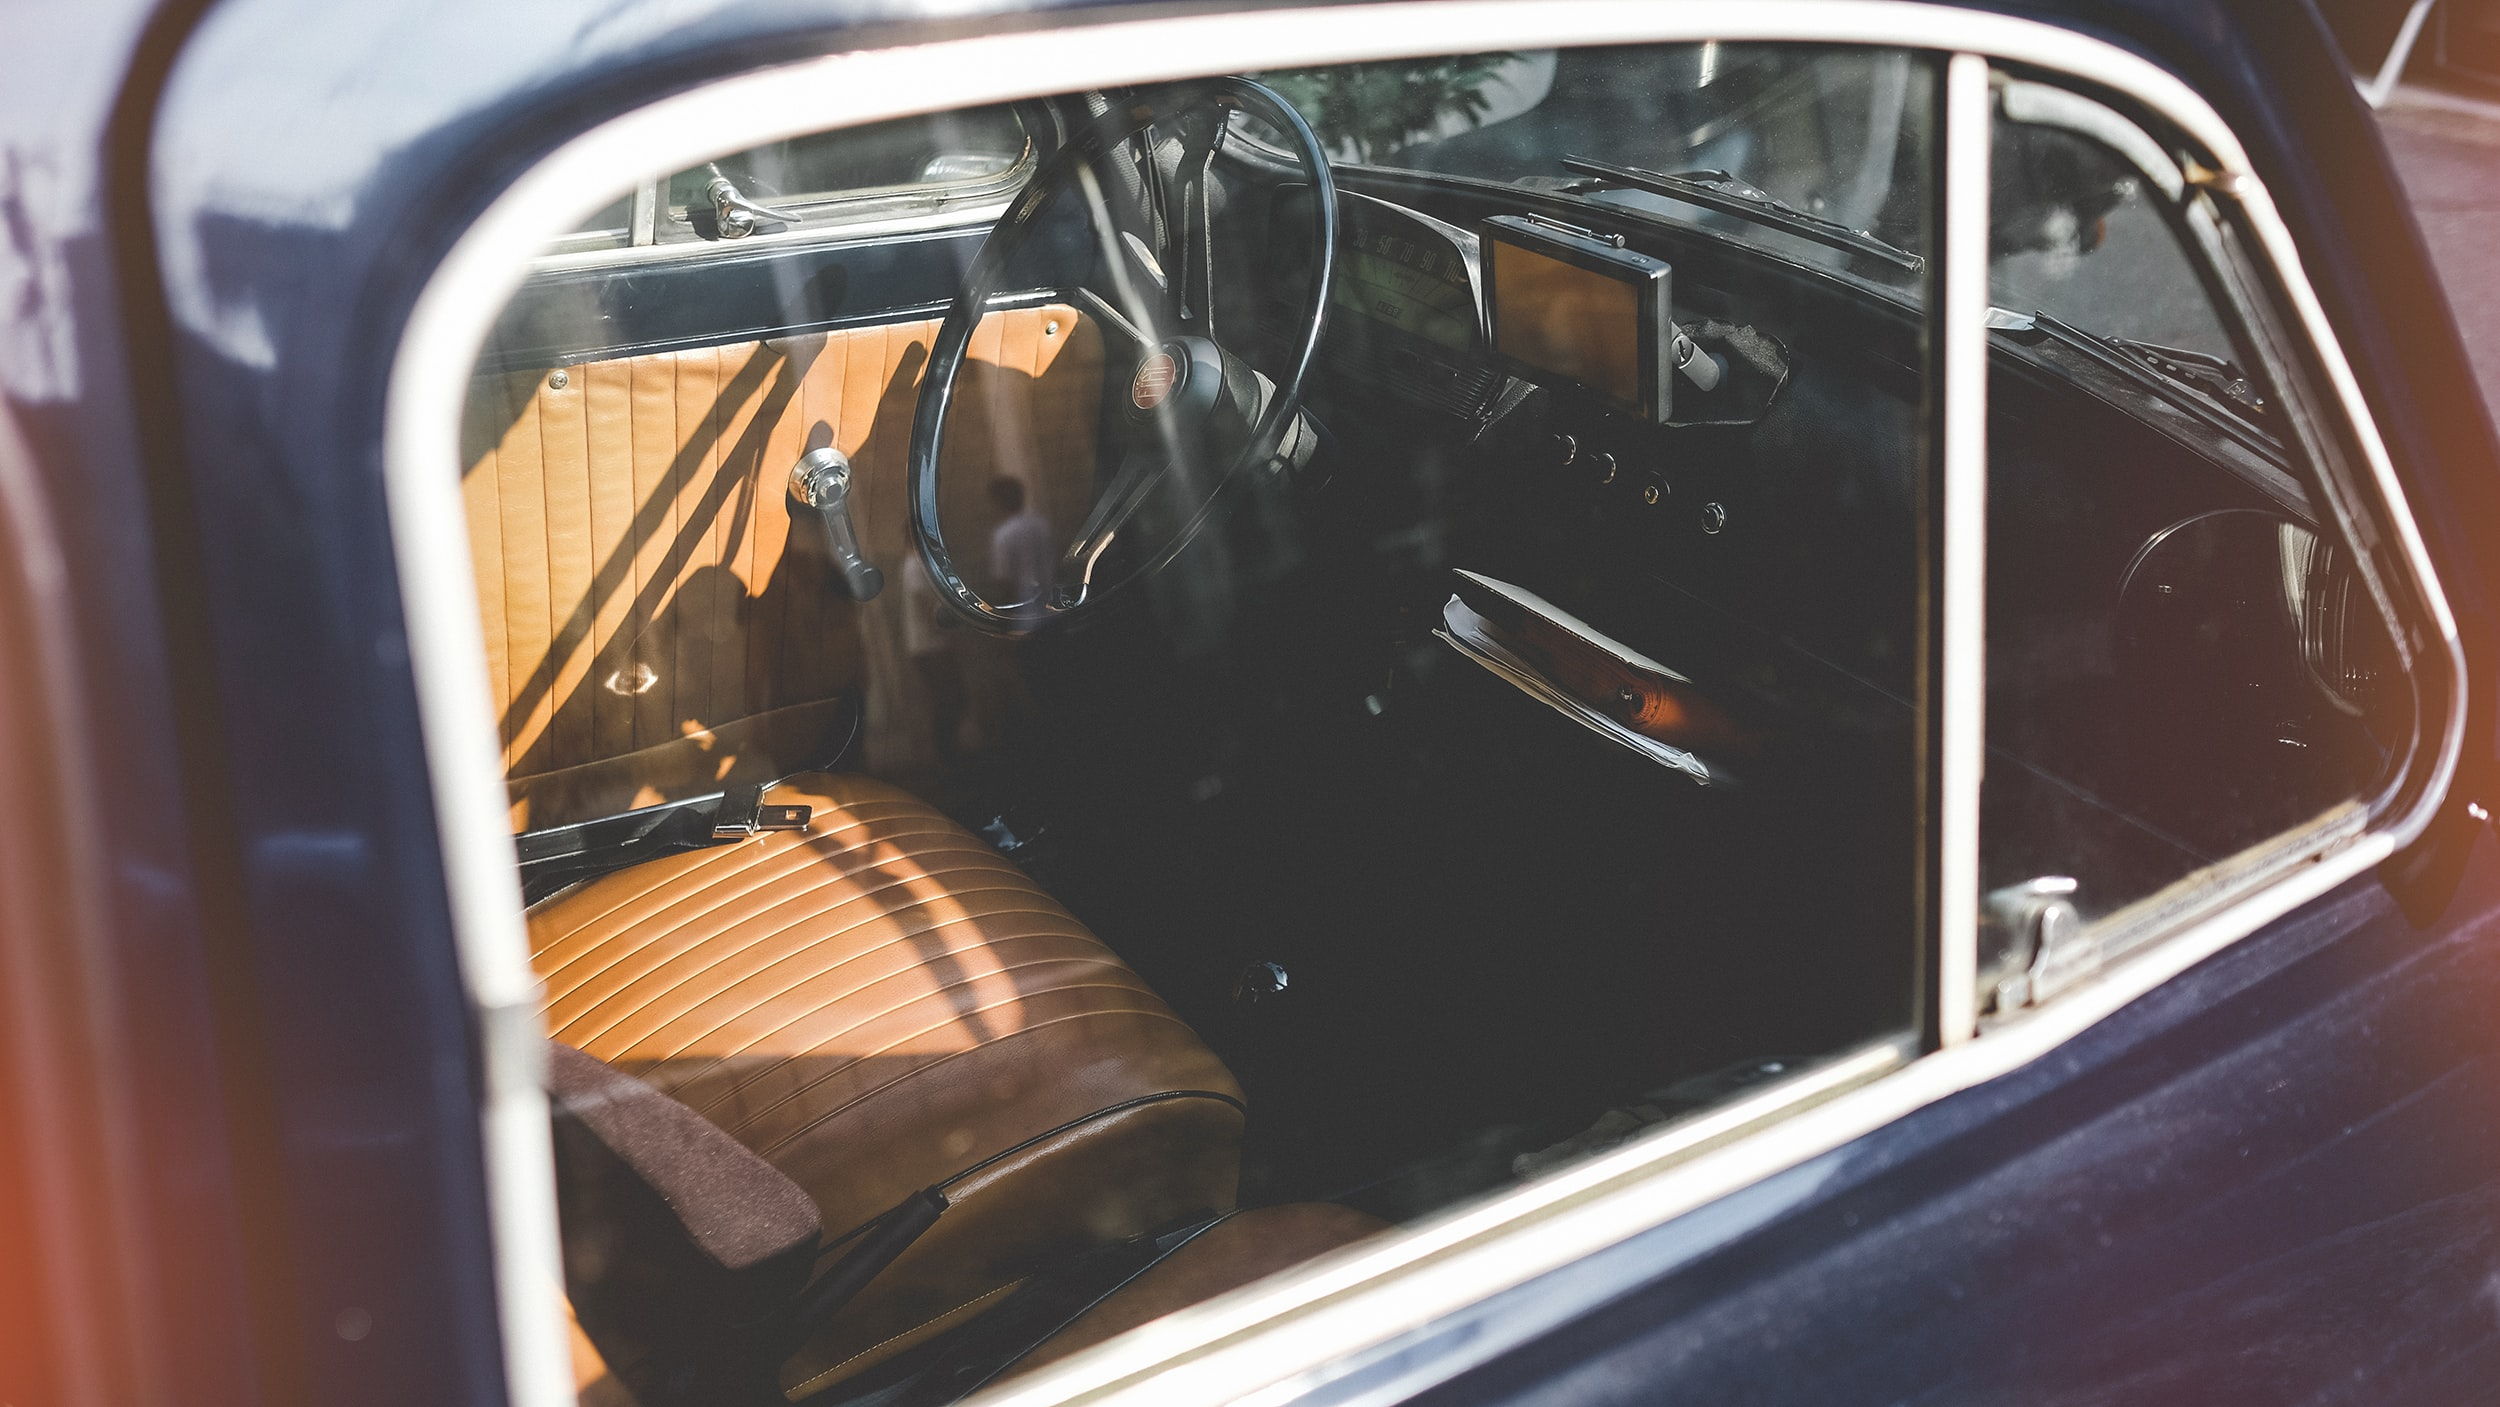 Interior of vintage car with brown leather seats from window